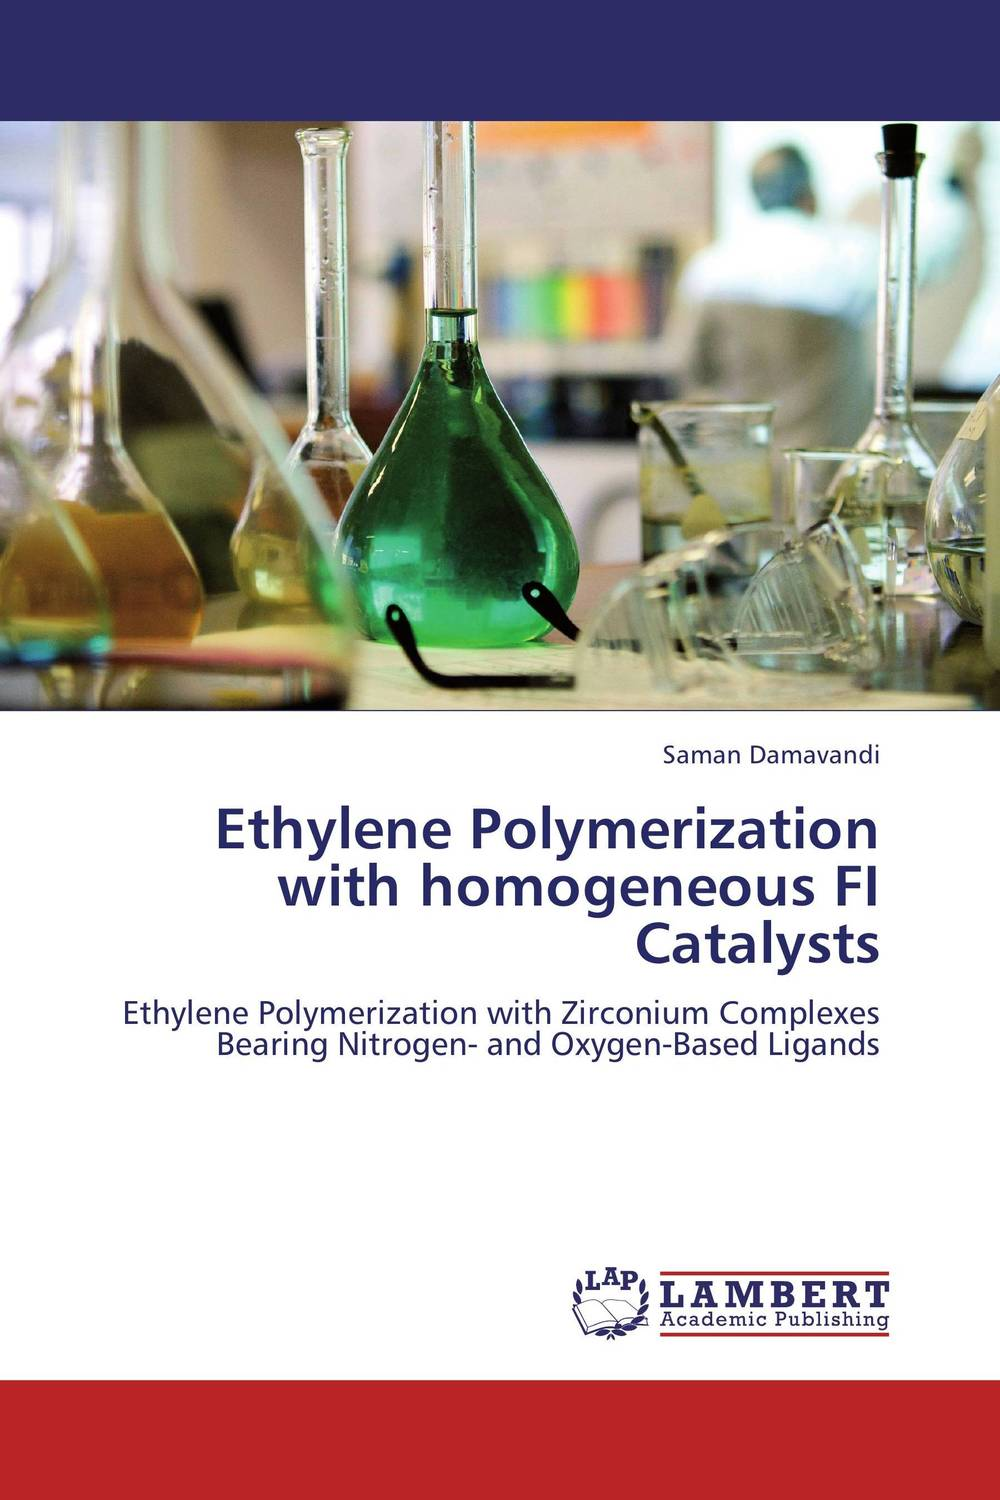 Ethylene Polymerization with homogeneous FI Catalysts saman damavandi novel titanium iv catalysts for olefin polymerization